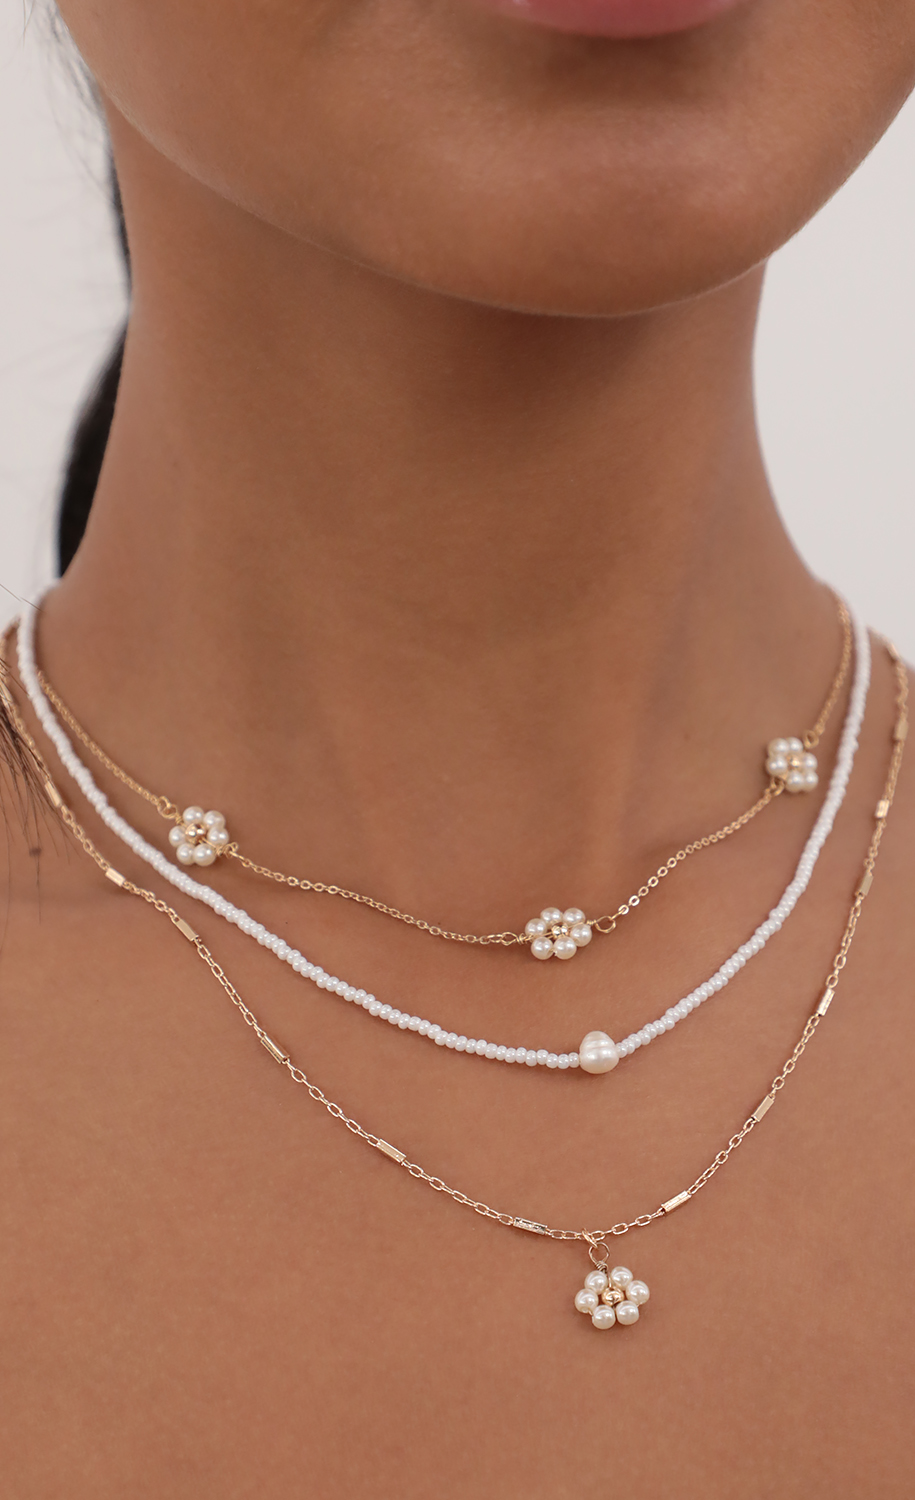 Bring Me to The Daisy Fields Necklace in Gold